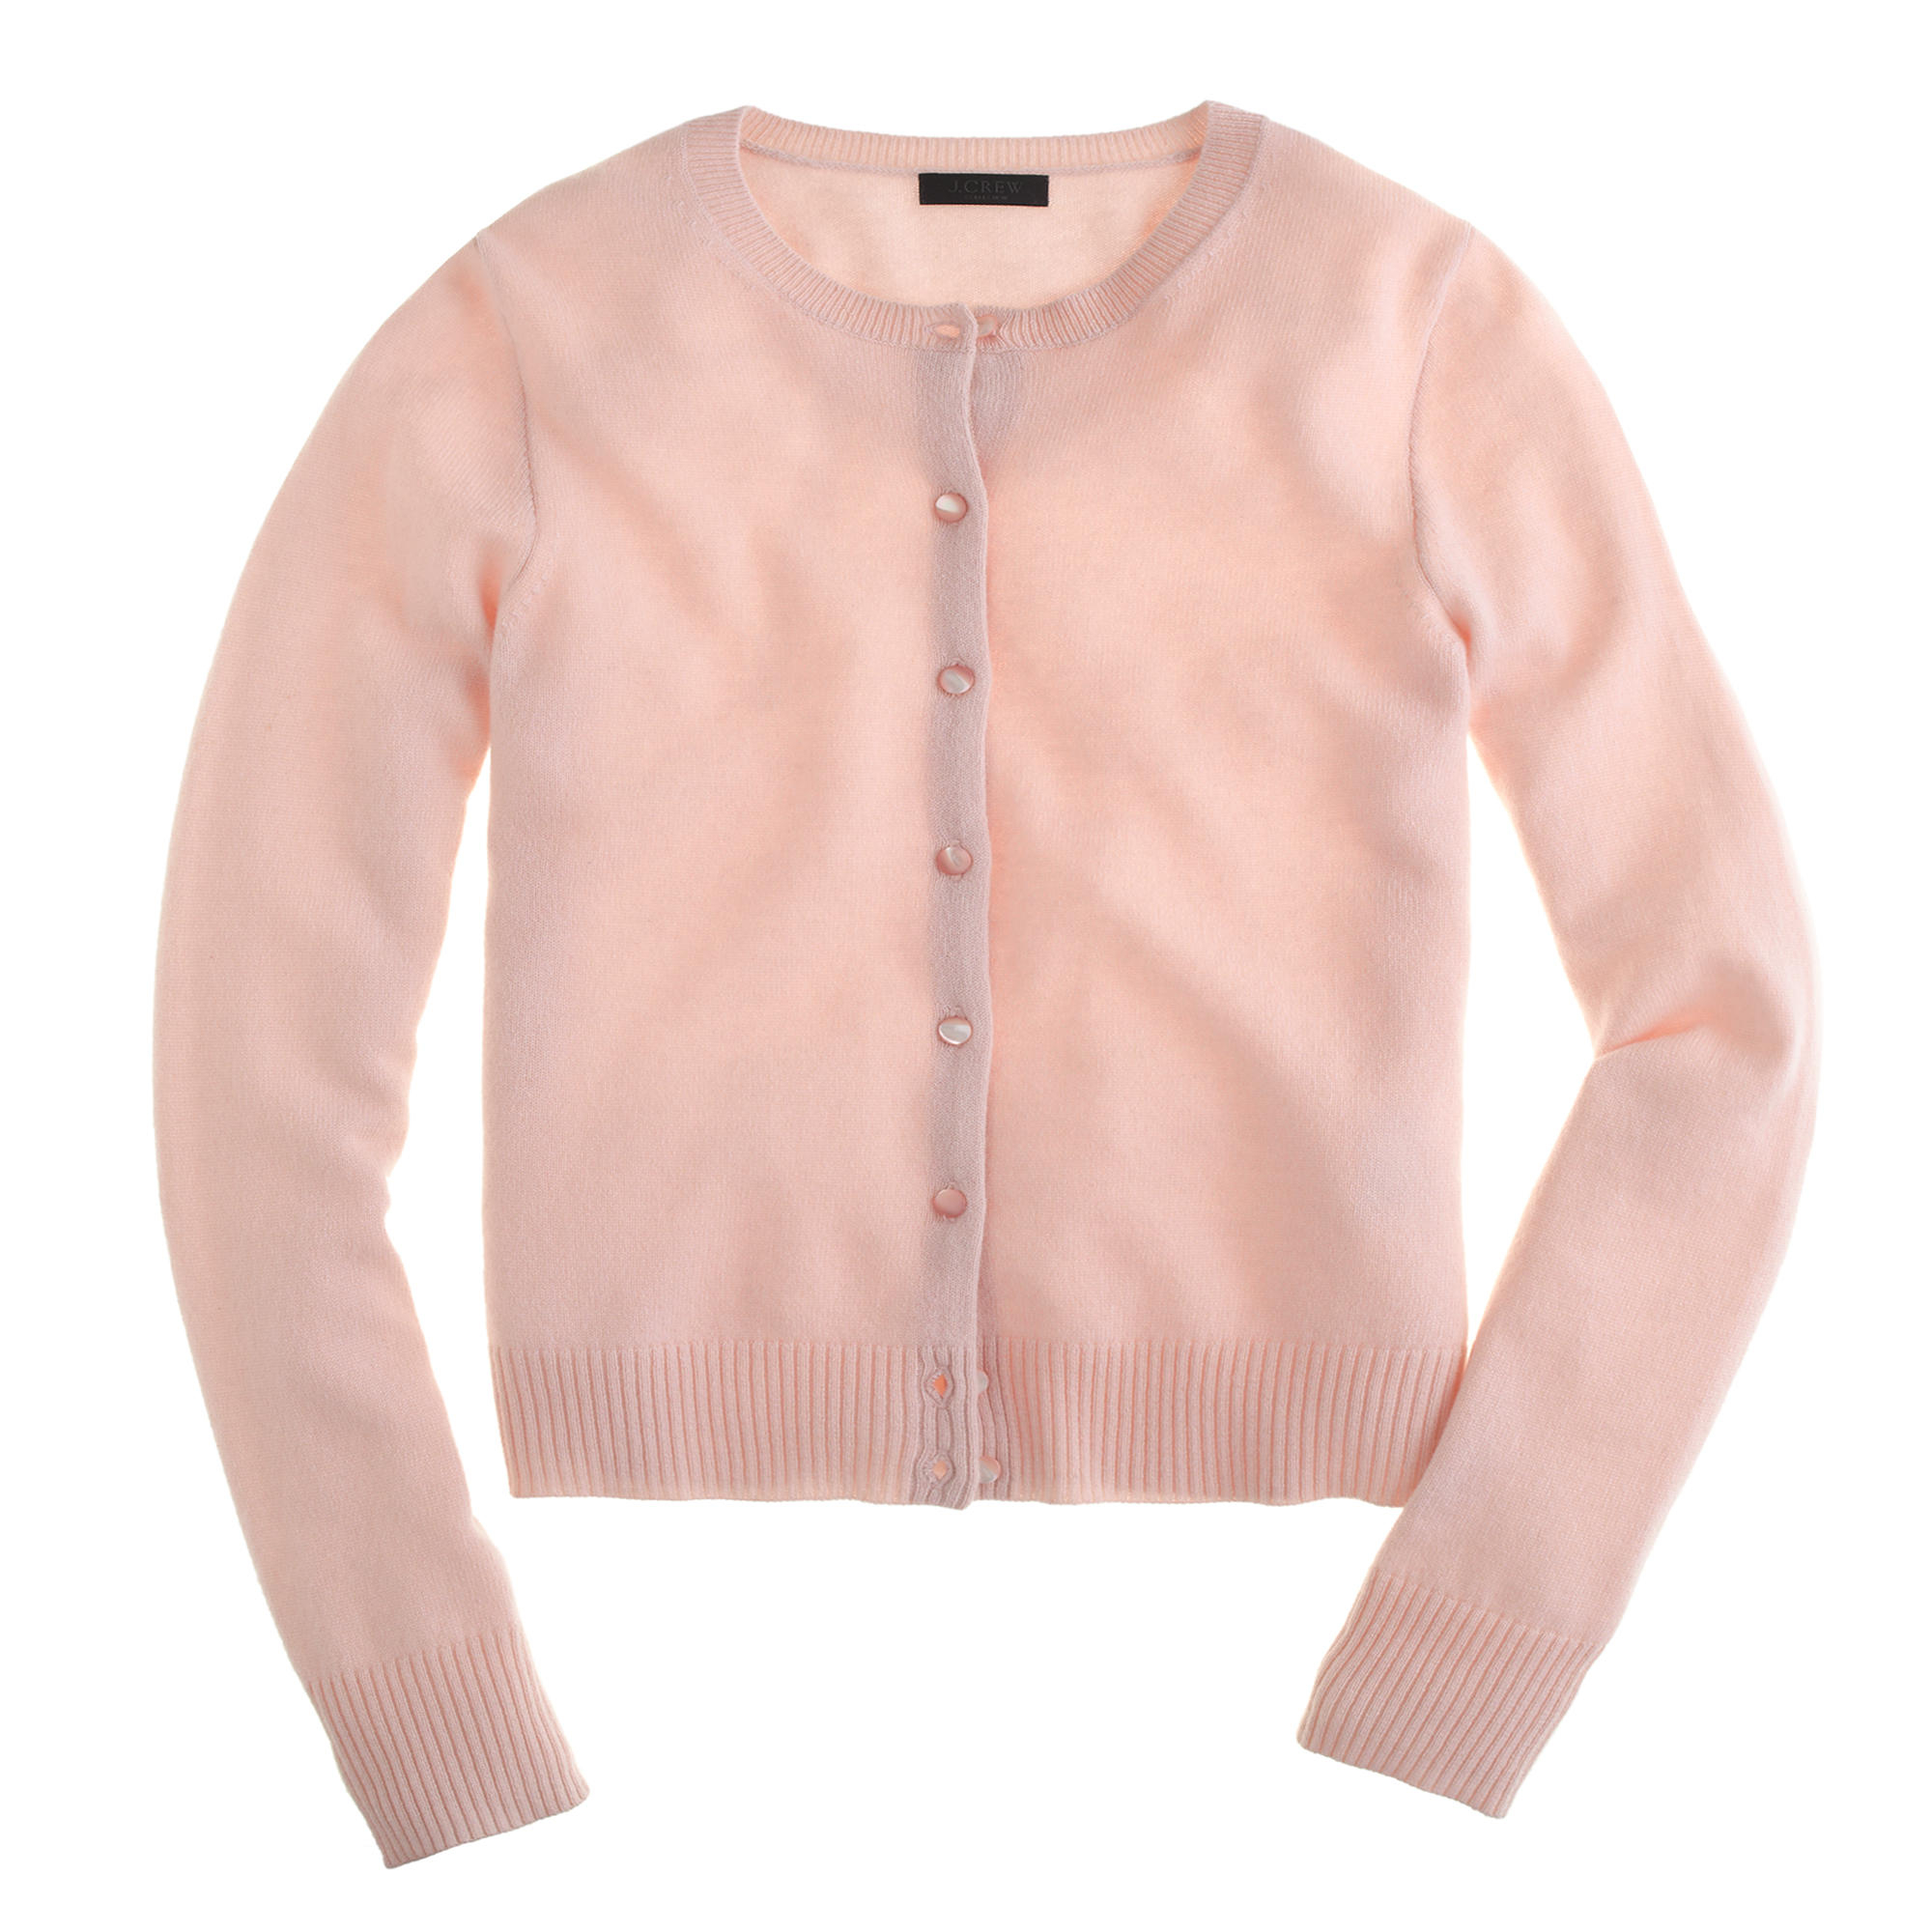 J.crew Collection Cashmere Cardigan Sweater in Pink | Lyst